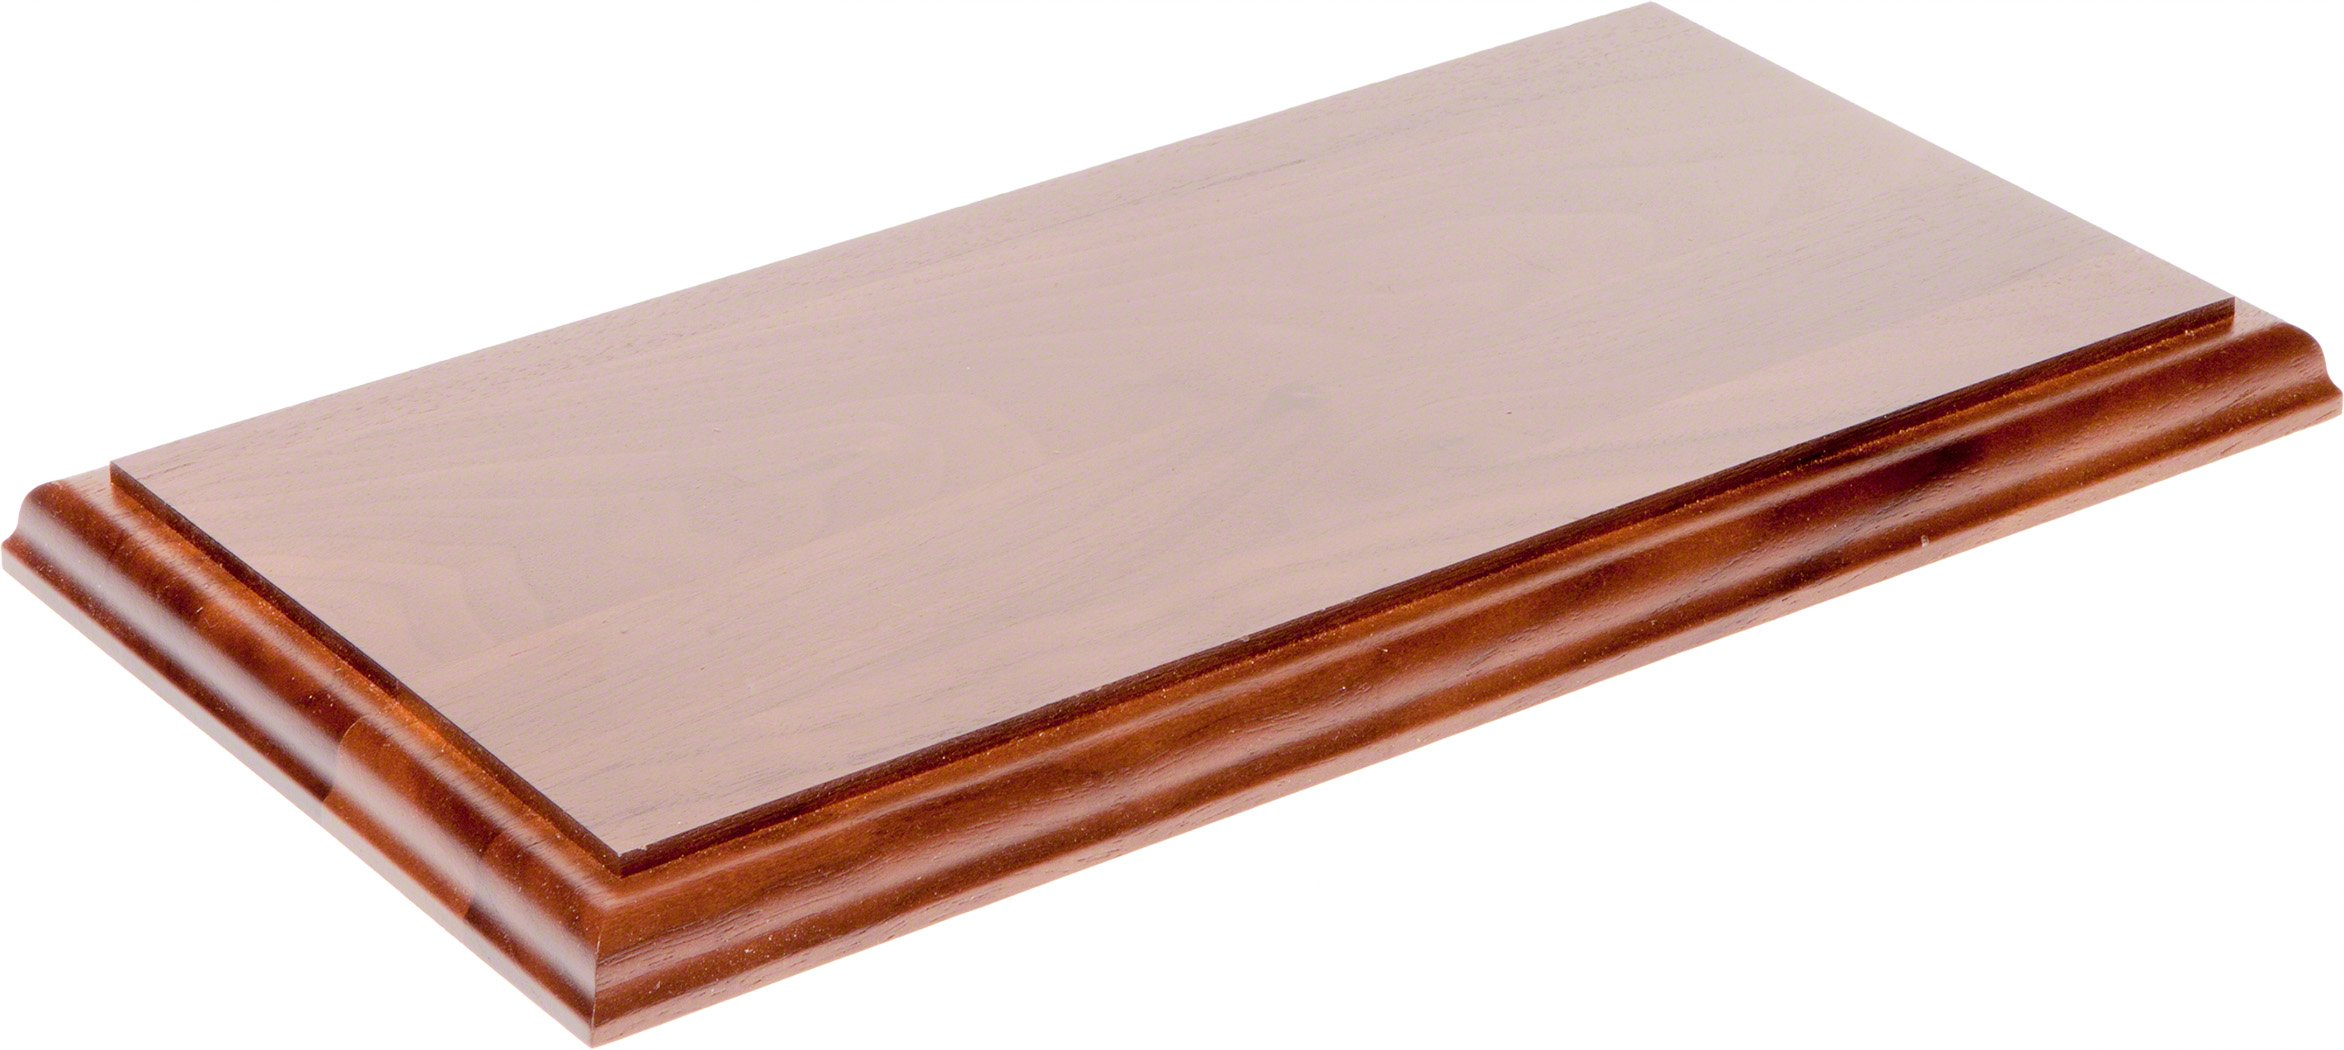 Plymor Brand Solid Walnut Rectangular Wood Display Base with Ogee Edge.75 H x 12'' W x 6'' D